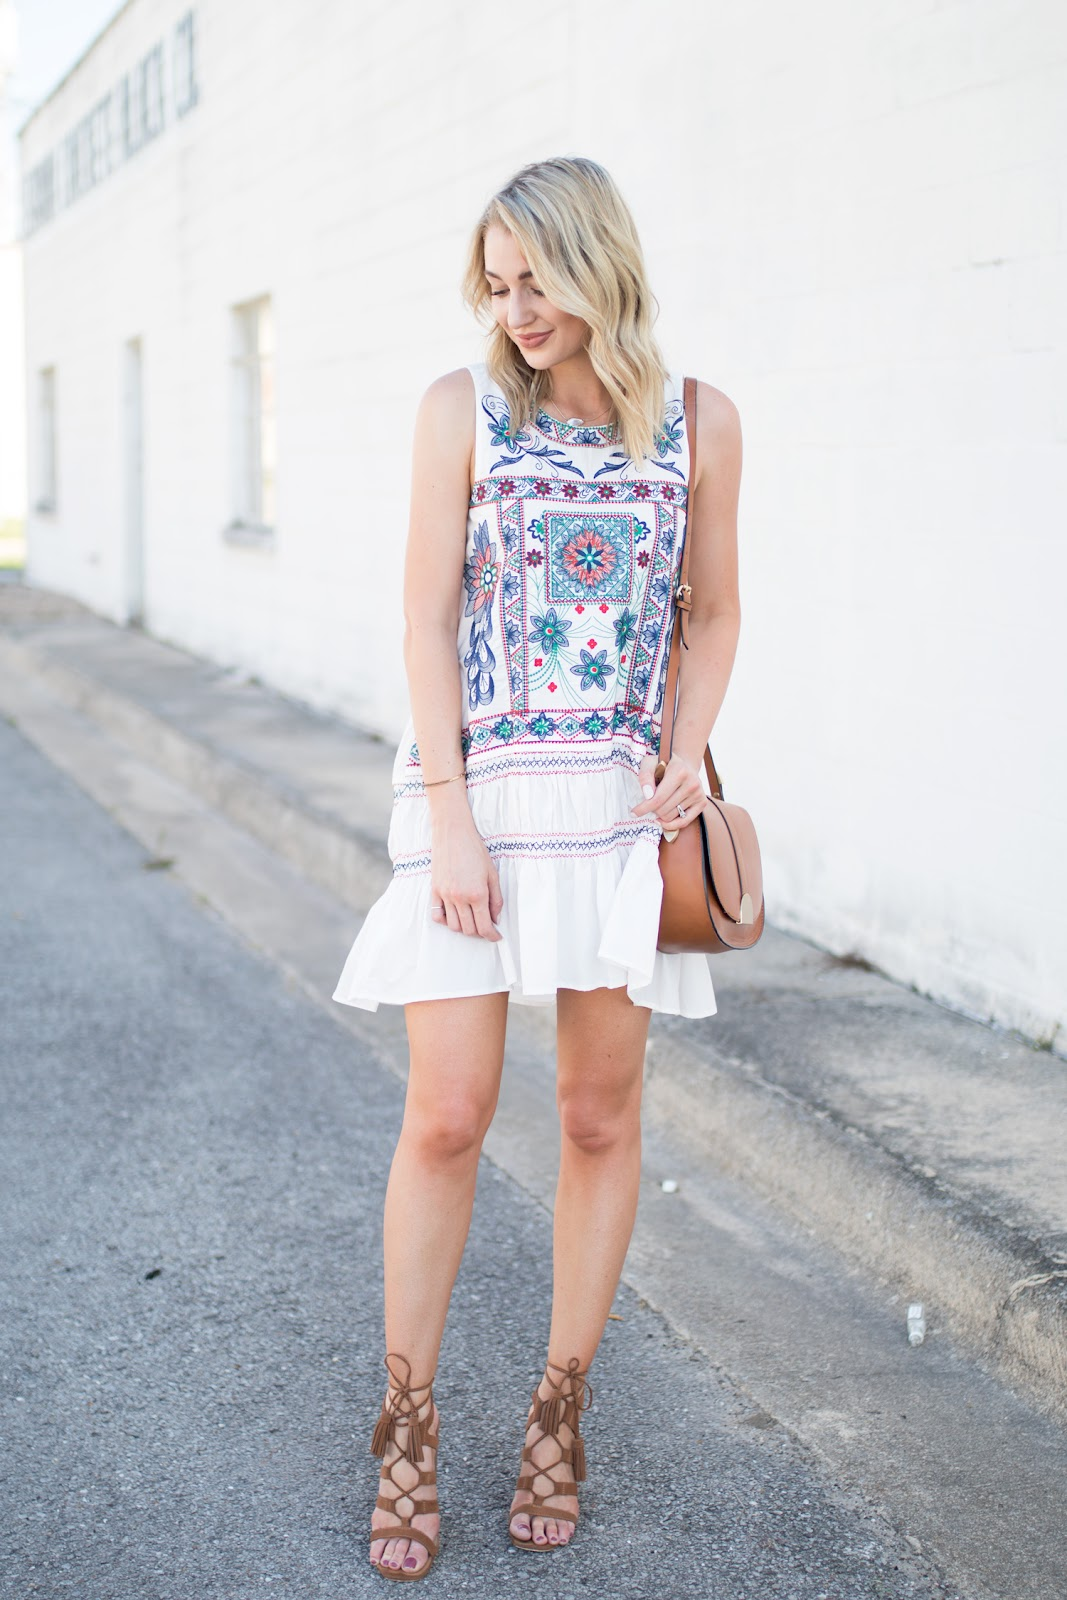 White dress with colorful embroidery